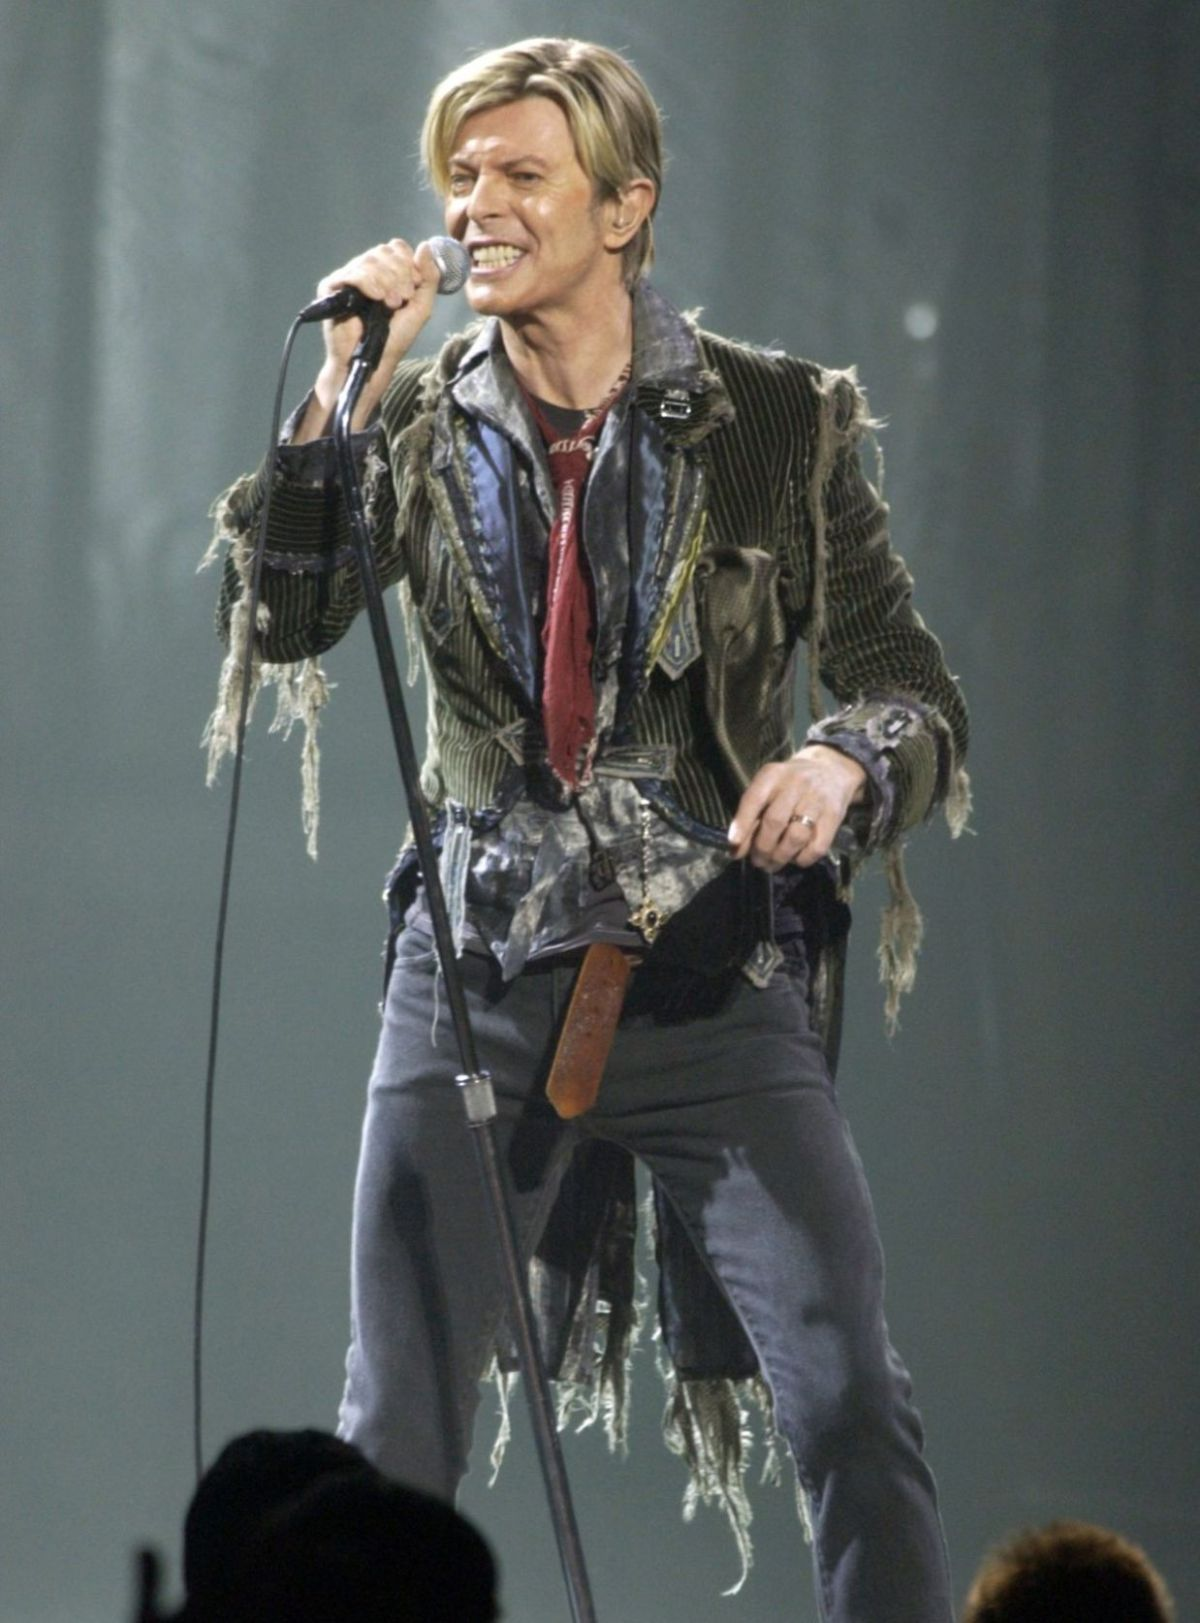 David Bowie 2004 : david, bowie, Thought, Bowie, Done,, Think, Again, Entertainment, Buffalonews.com